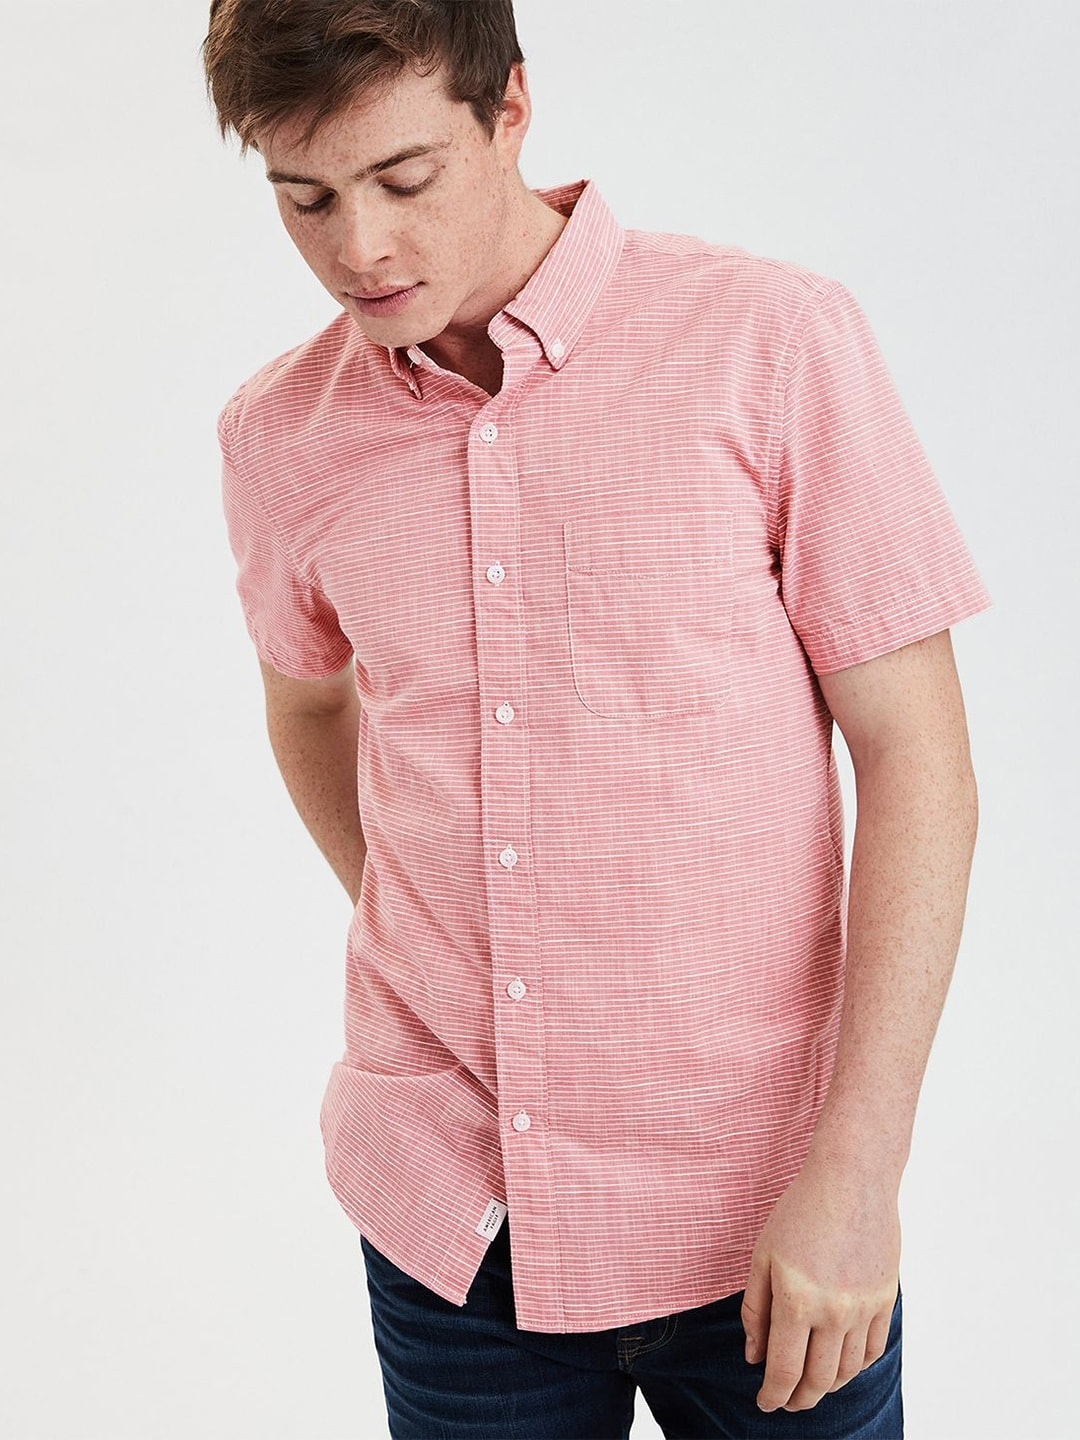 3fc3084ac80 Casual Shirts for Men - Buy Men Casual Shirt Online in India